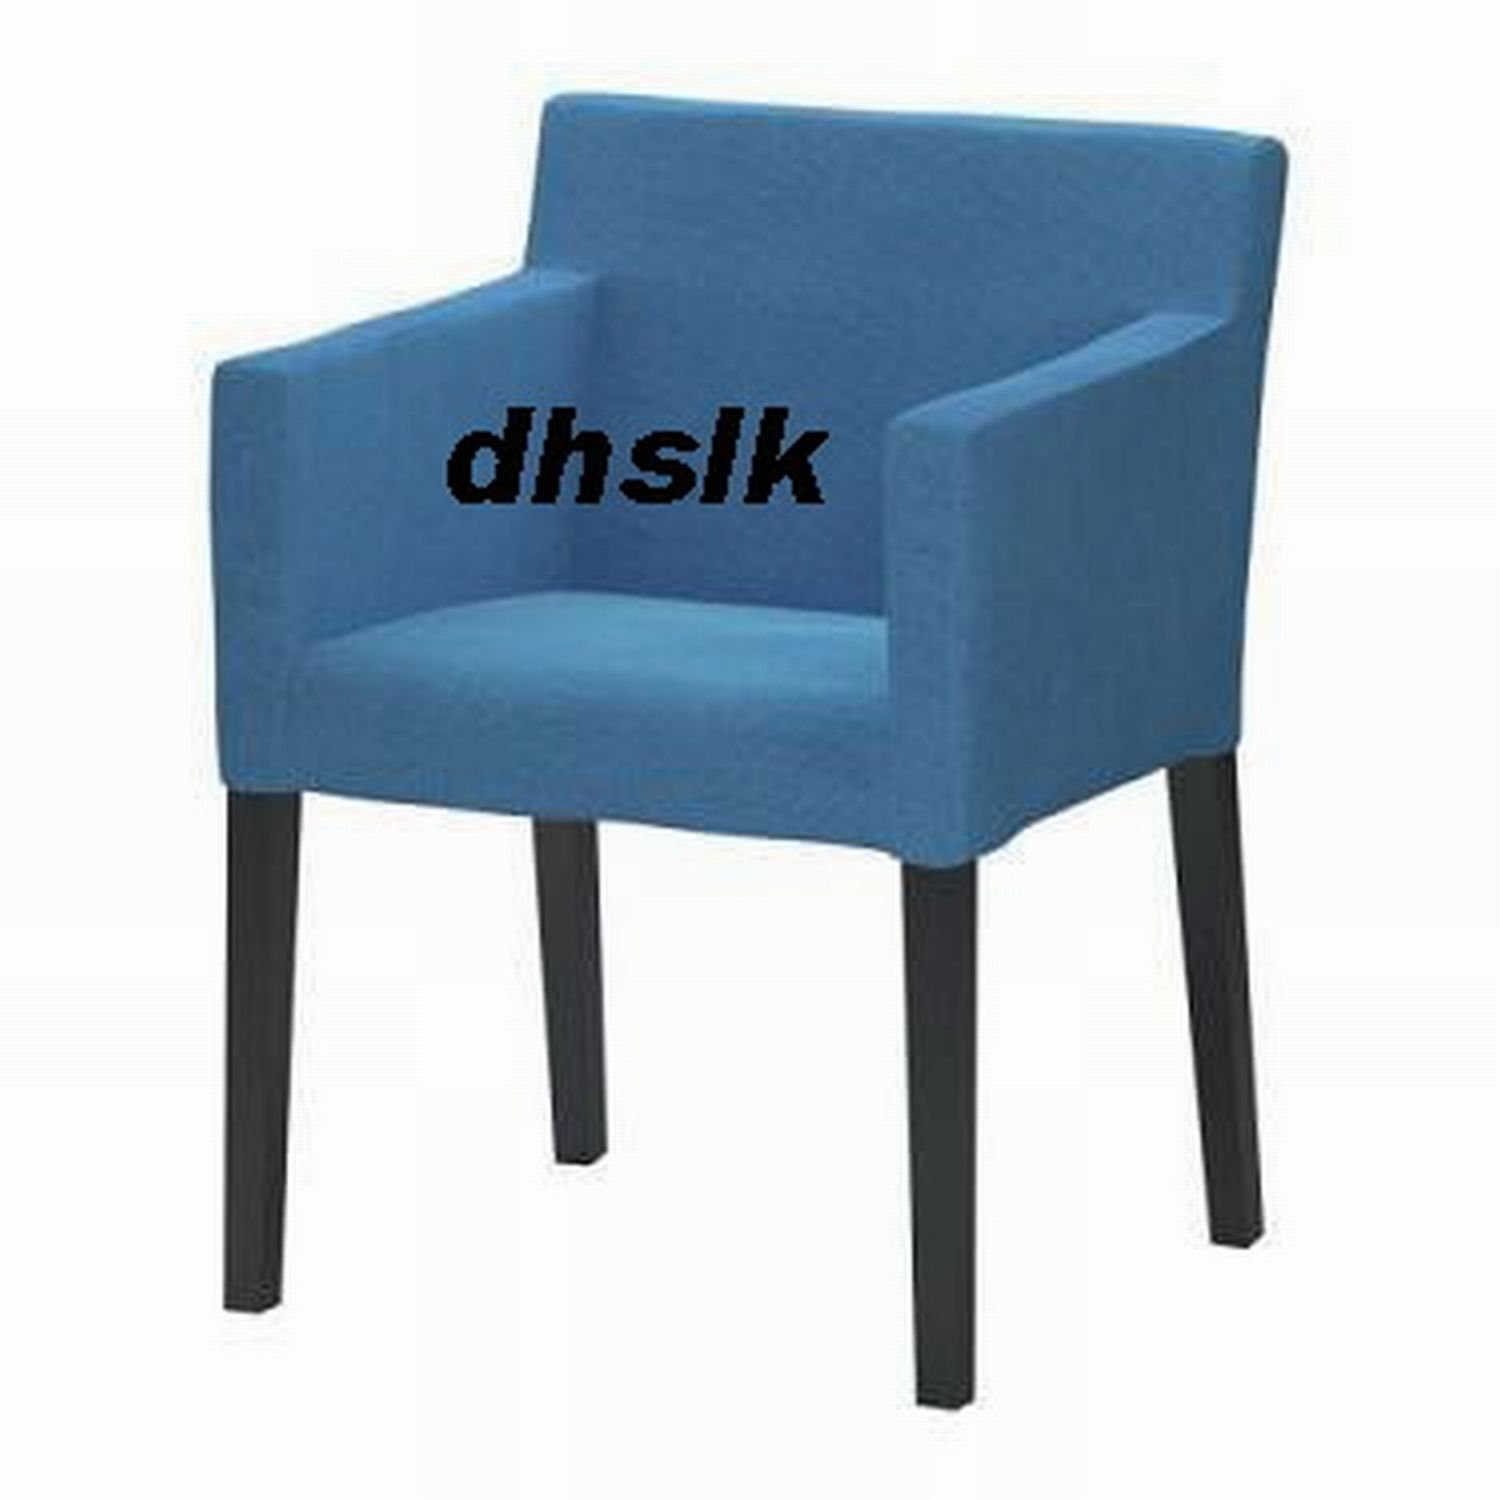 Ikea Nils Chair W Armrests Slipcover Cover Korndal Blue